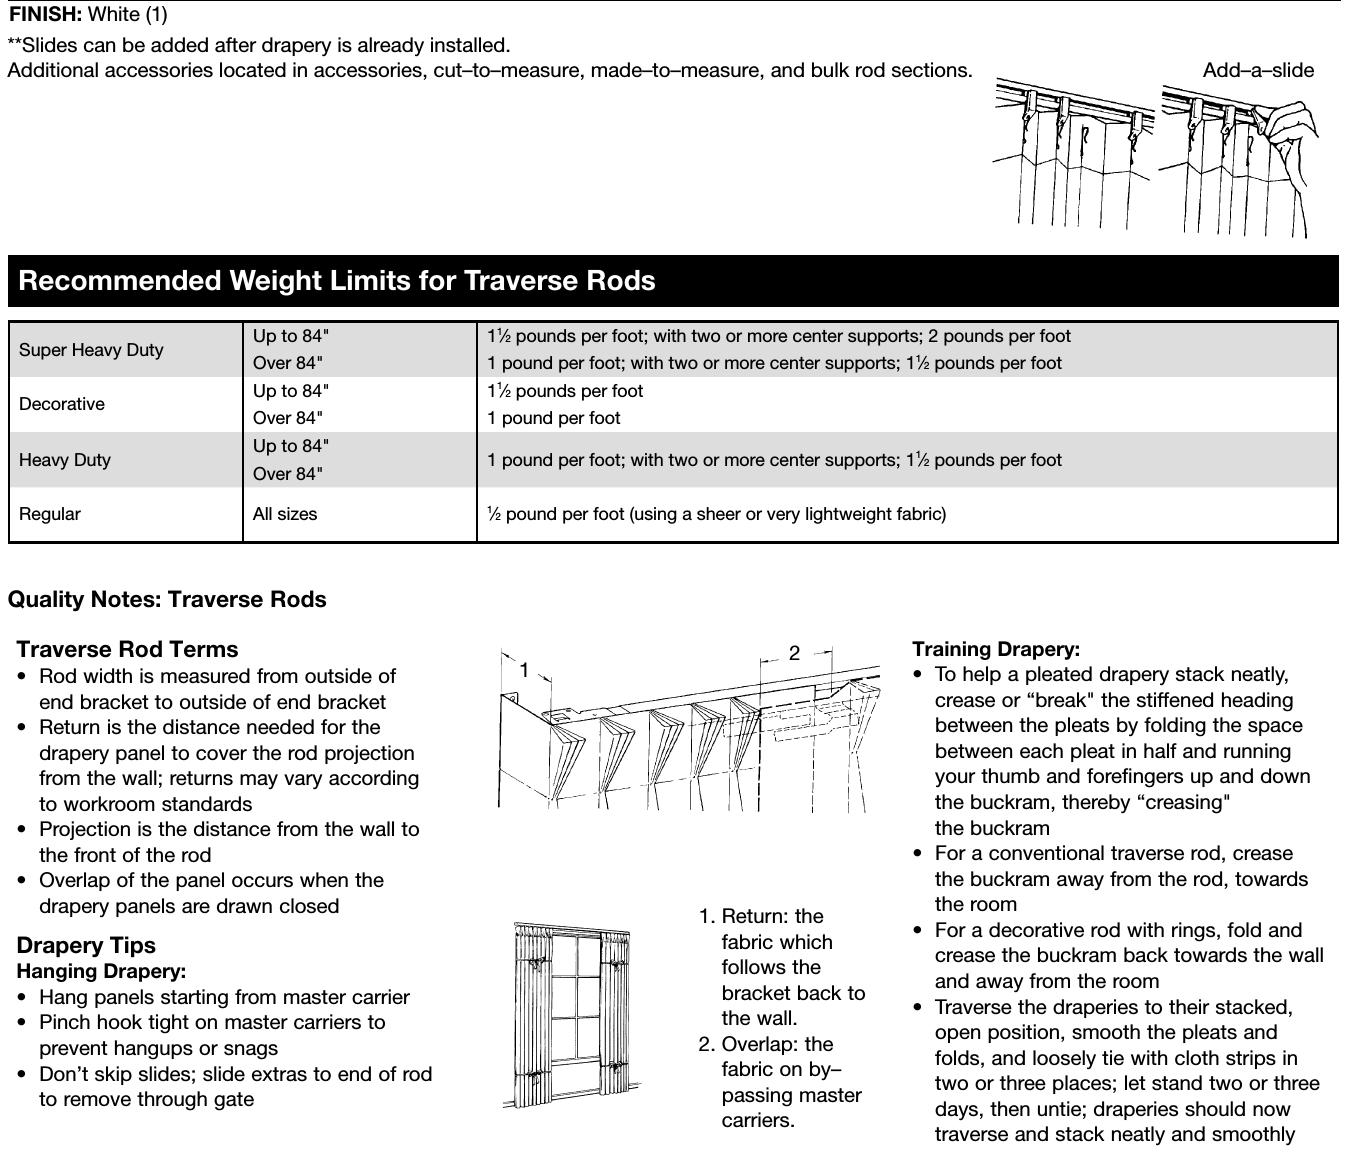 Traverse Rod slide and weight limits